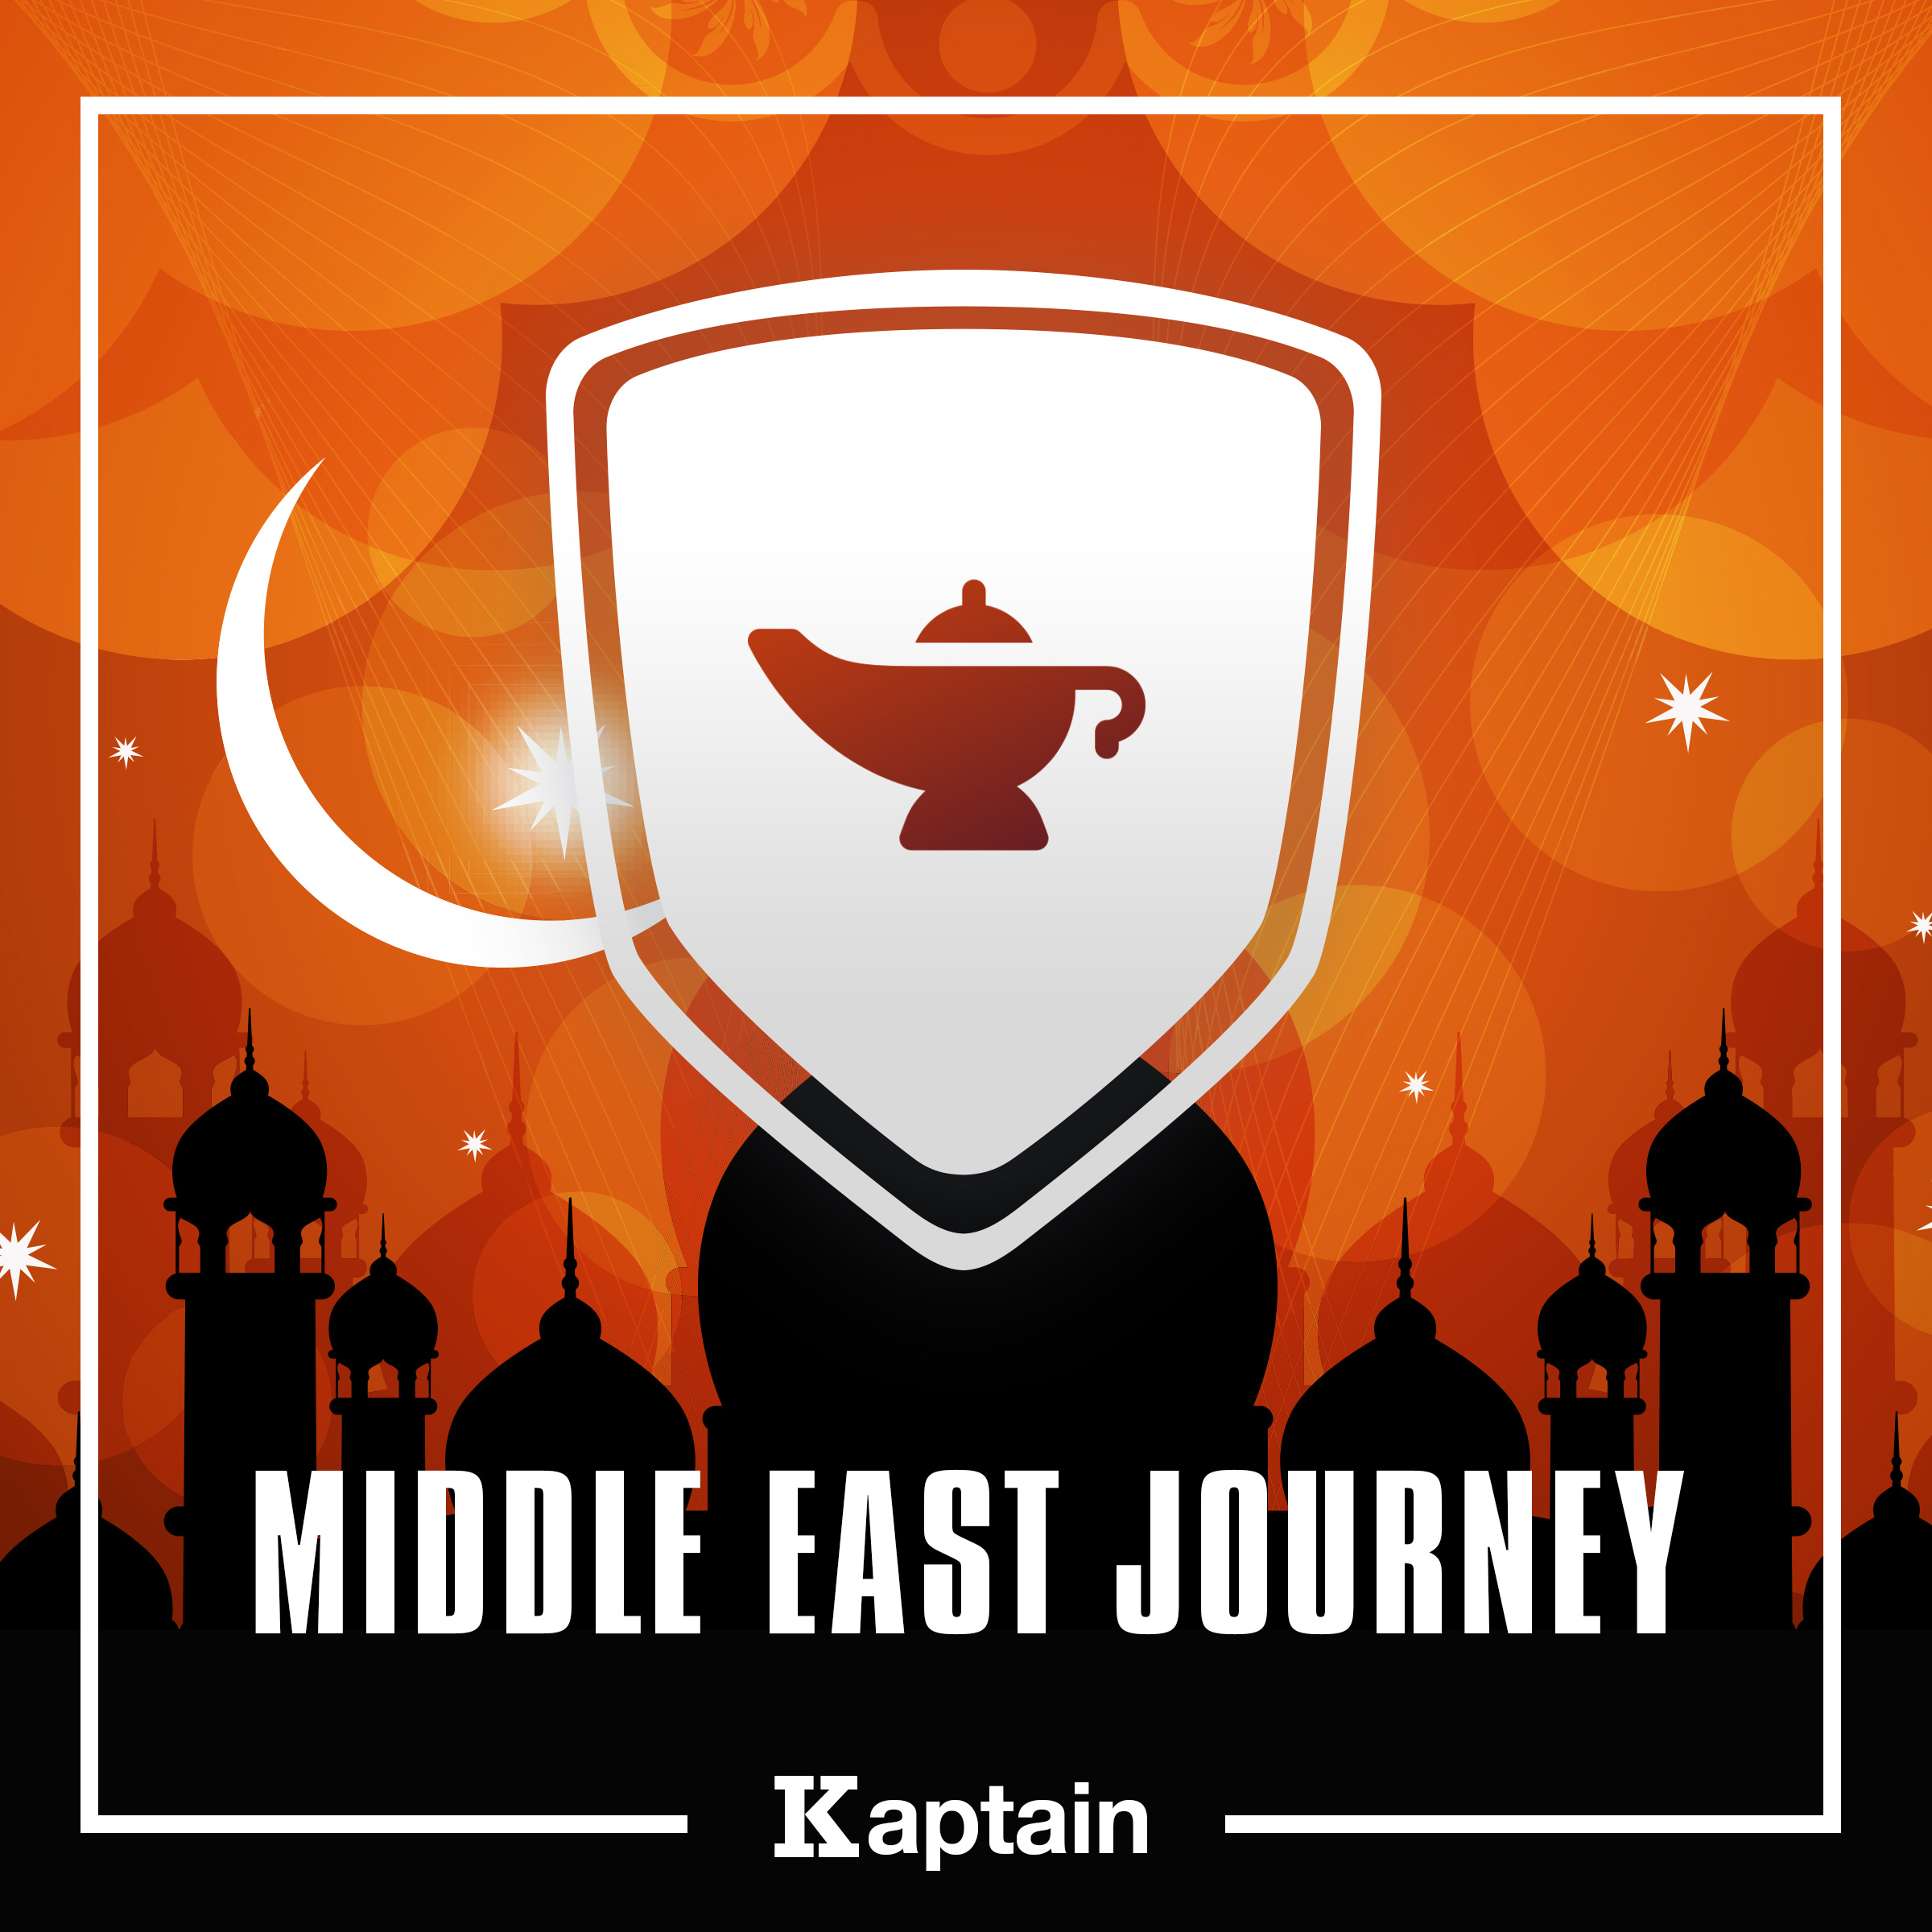 Middle East Journey